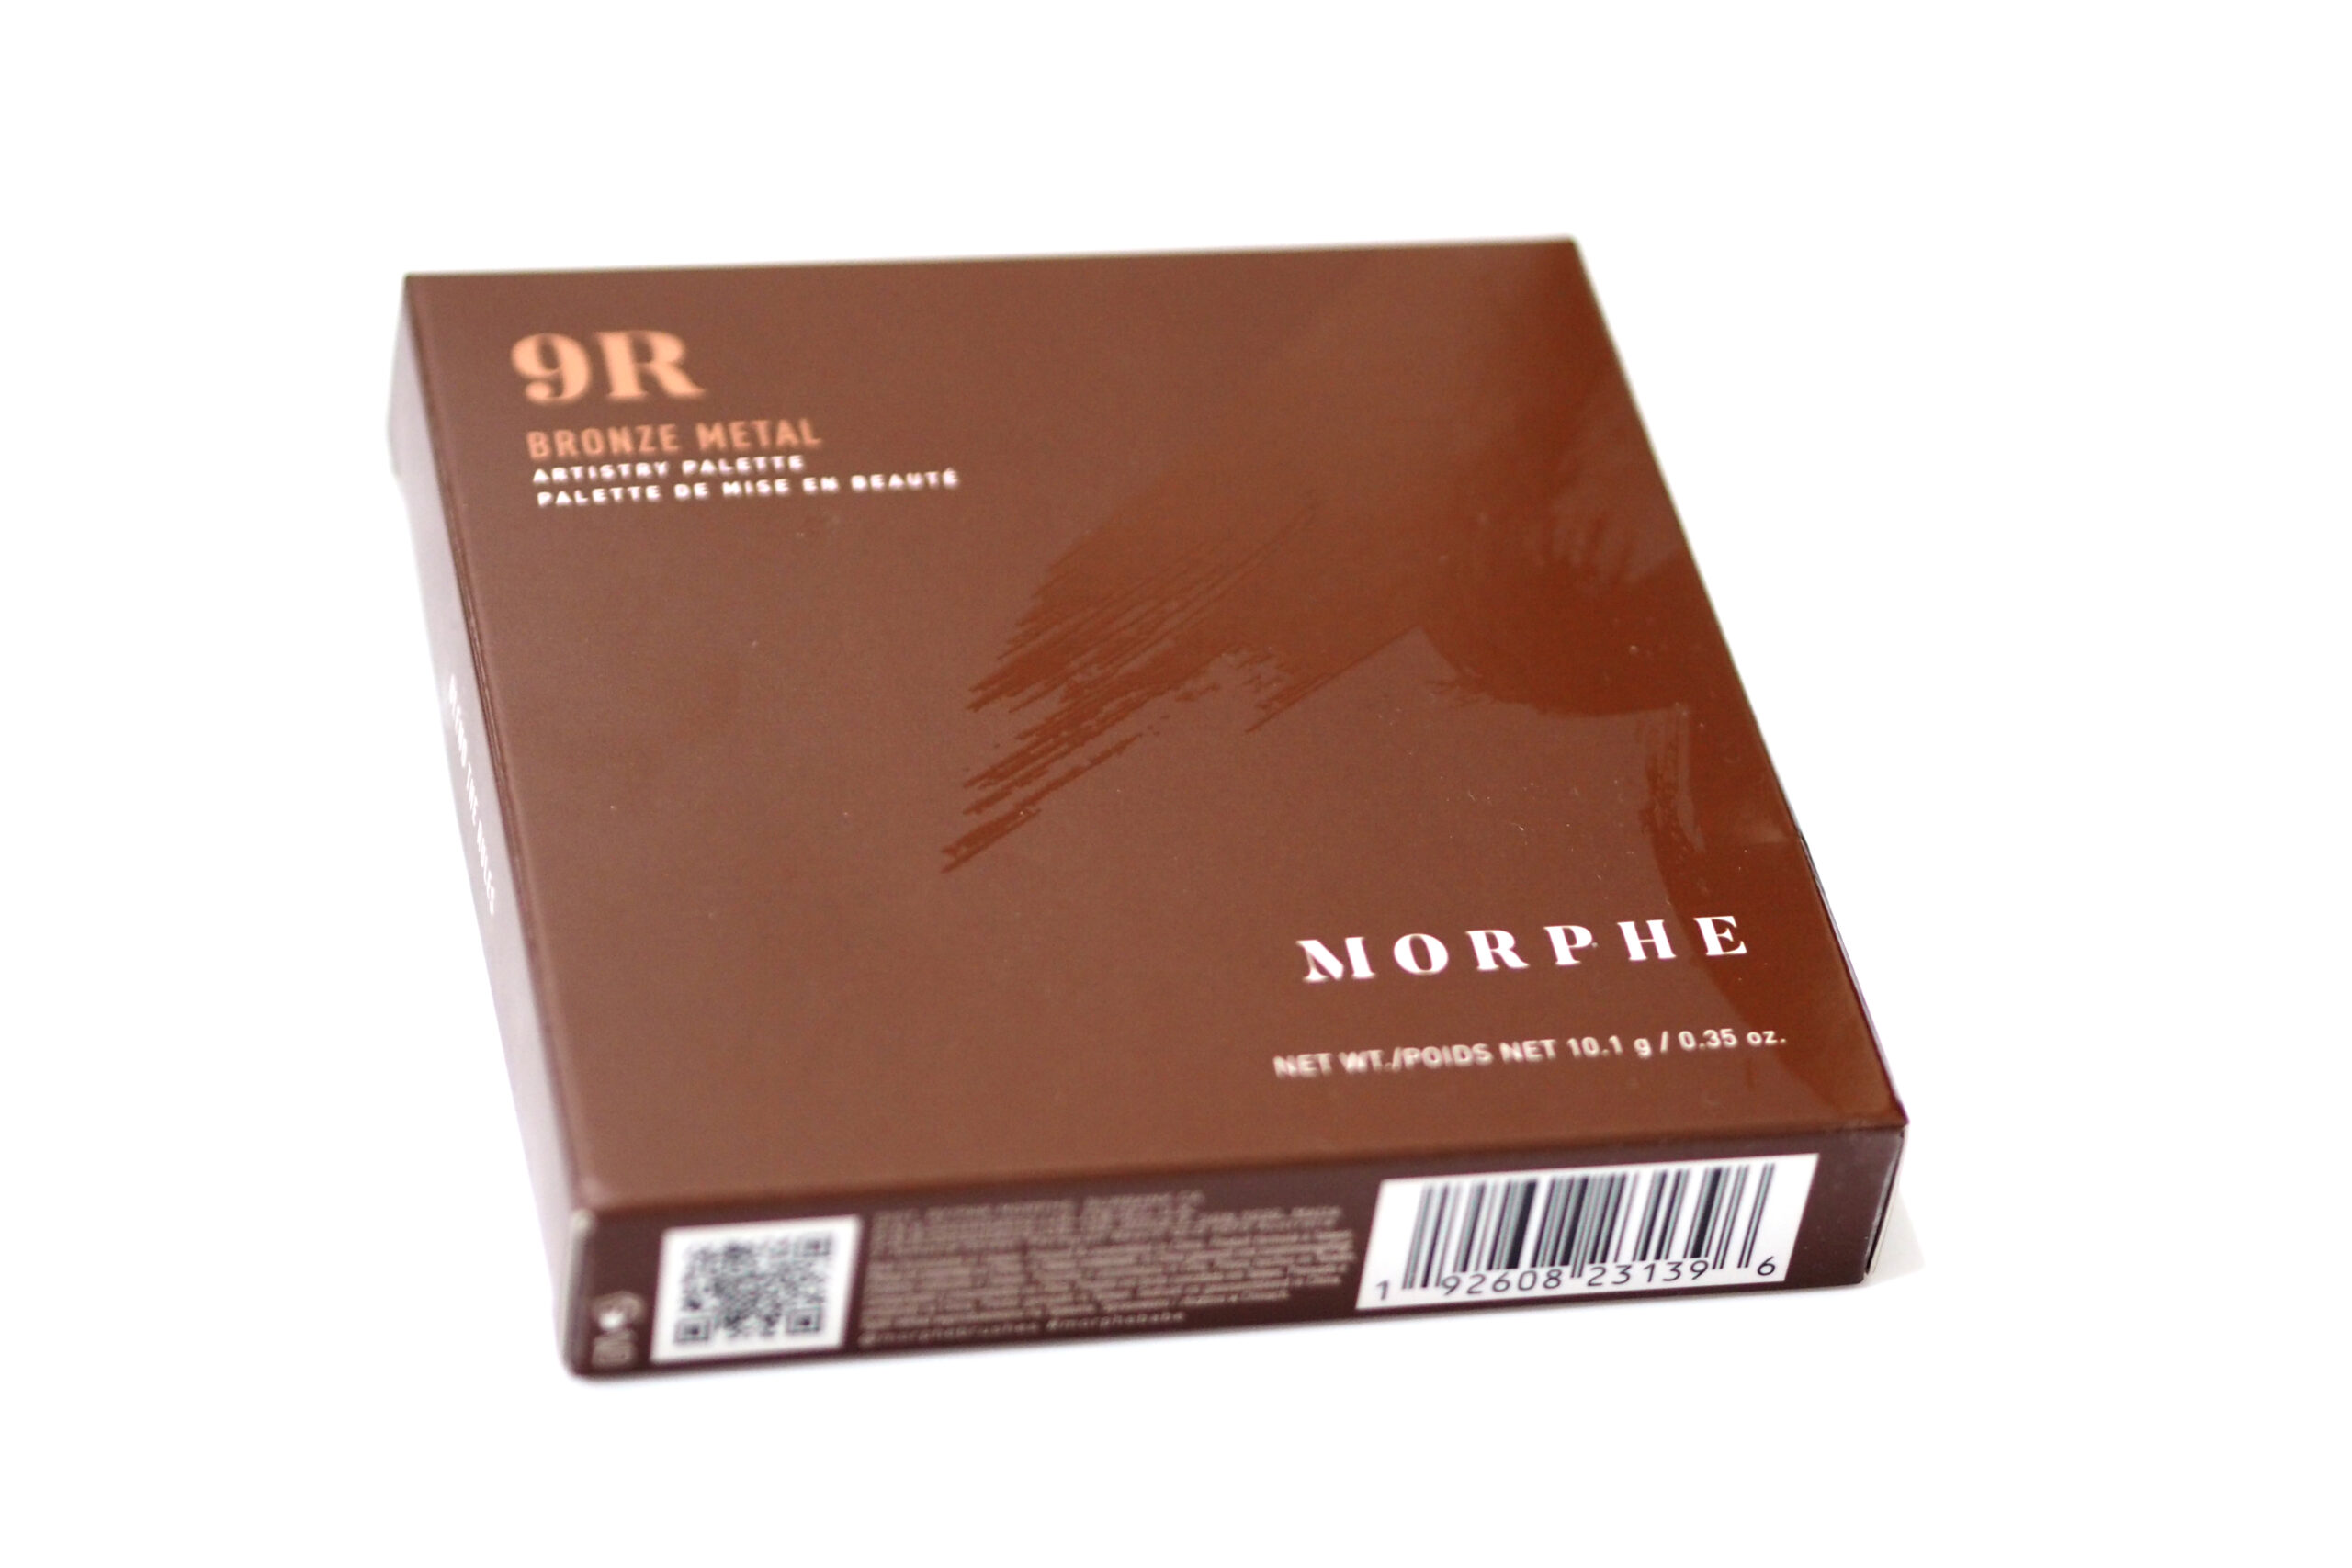 Morphe 9R Bronze Metal Artistry Palette Review Swatches